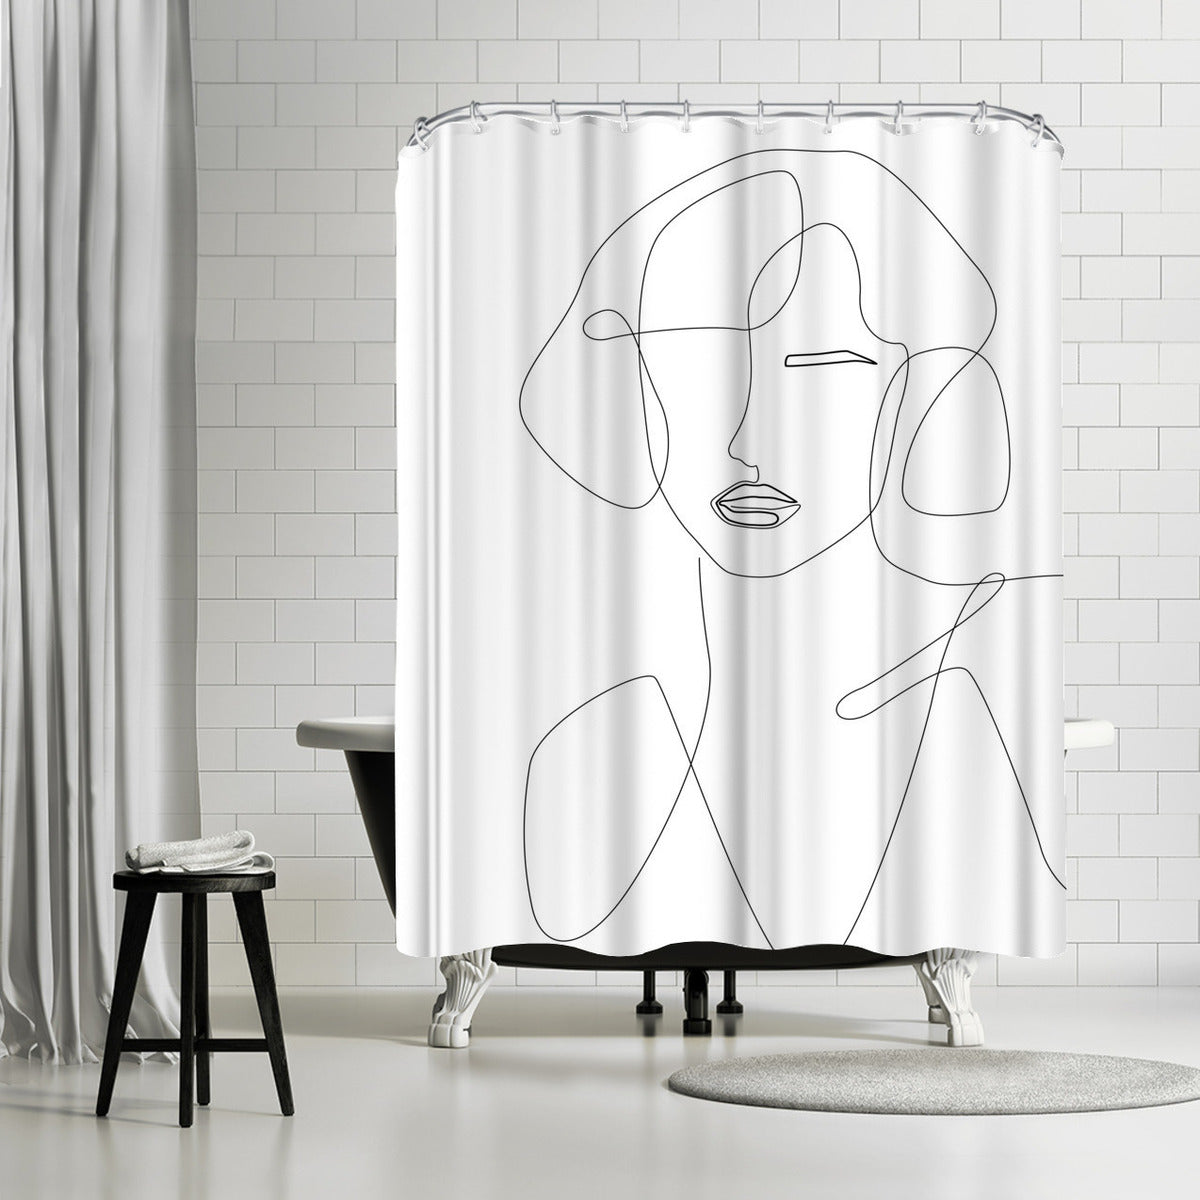 Feminine Touch by Explicit Design Shower Curtain - Shower Curtain - Americanflat